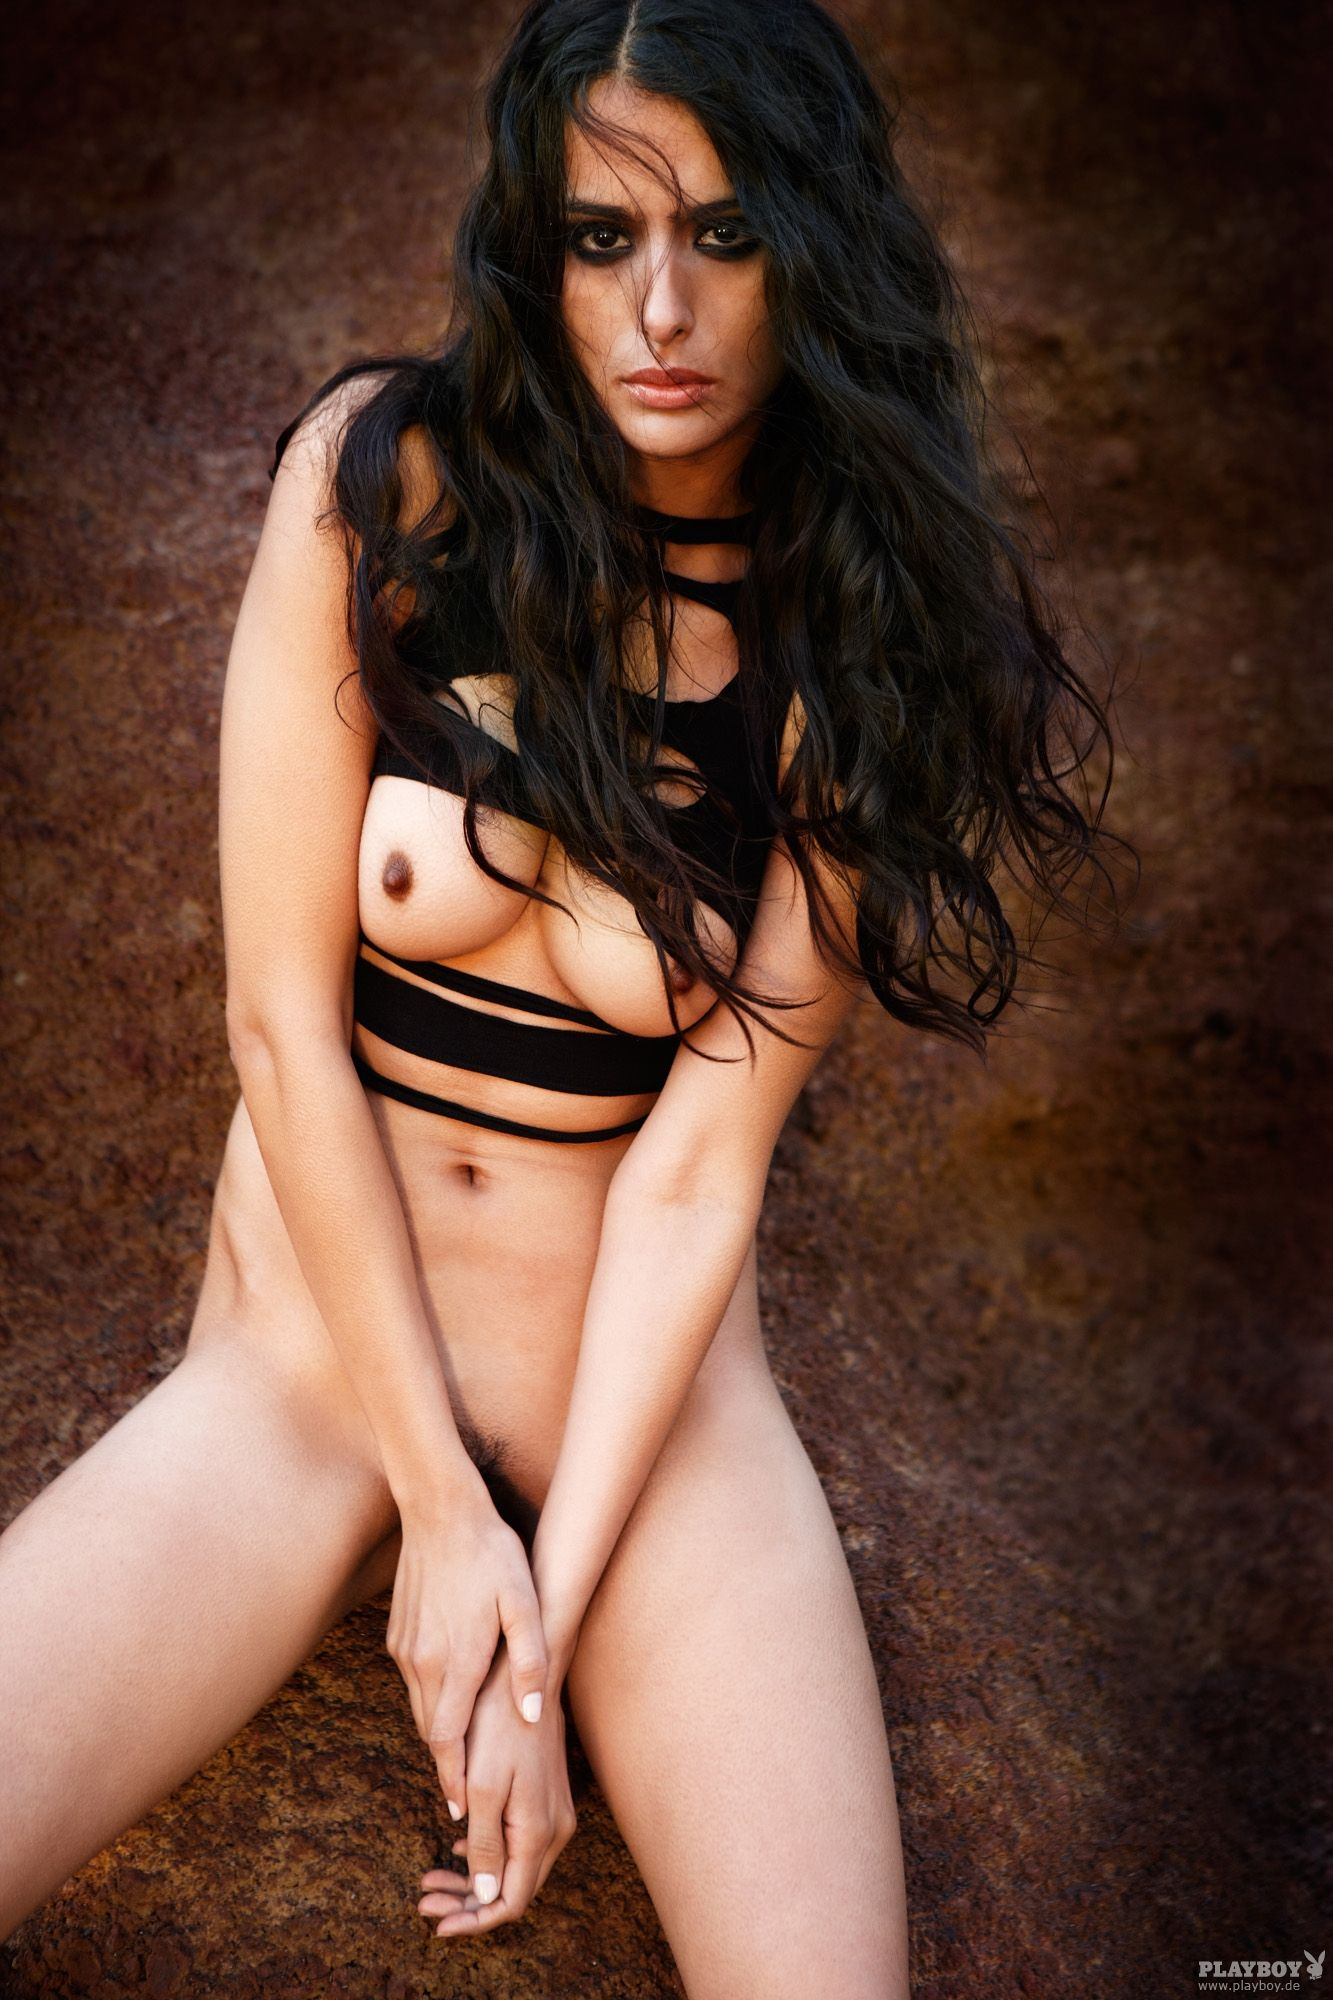 31829_GabrielaMilagre_PlayboyGermany_August201238_123_458lo.jpg